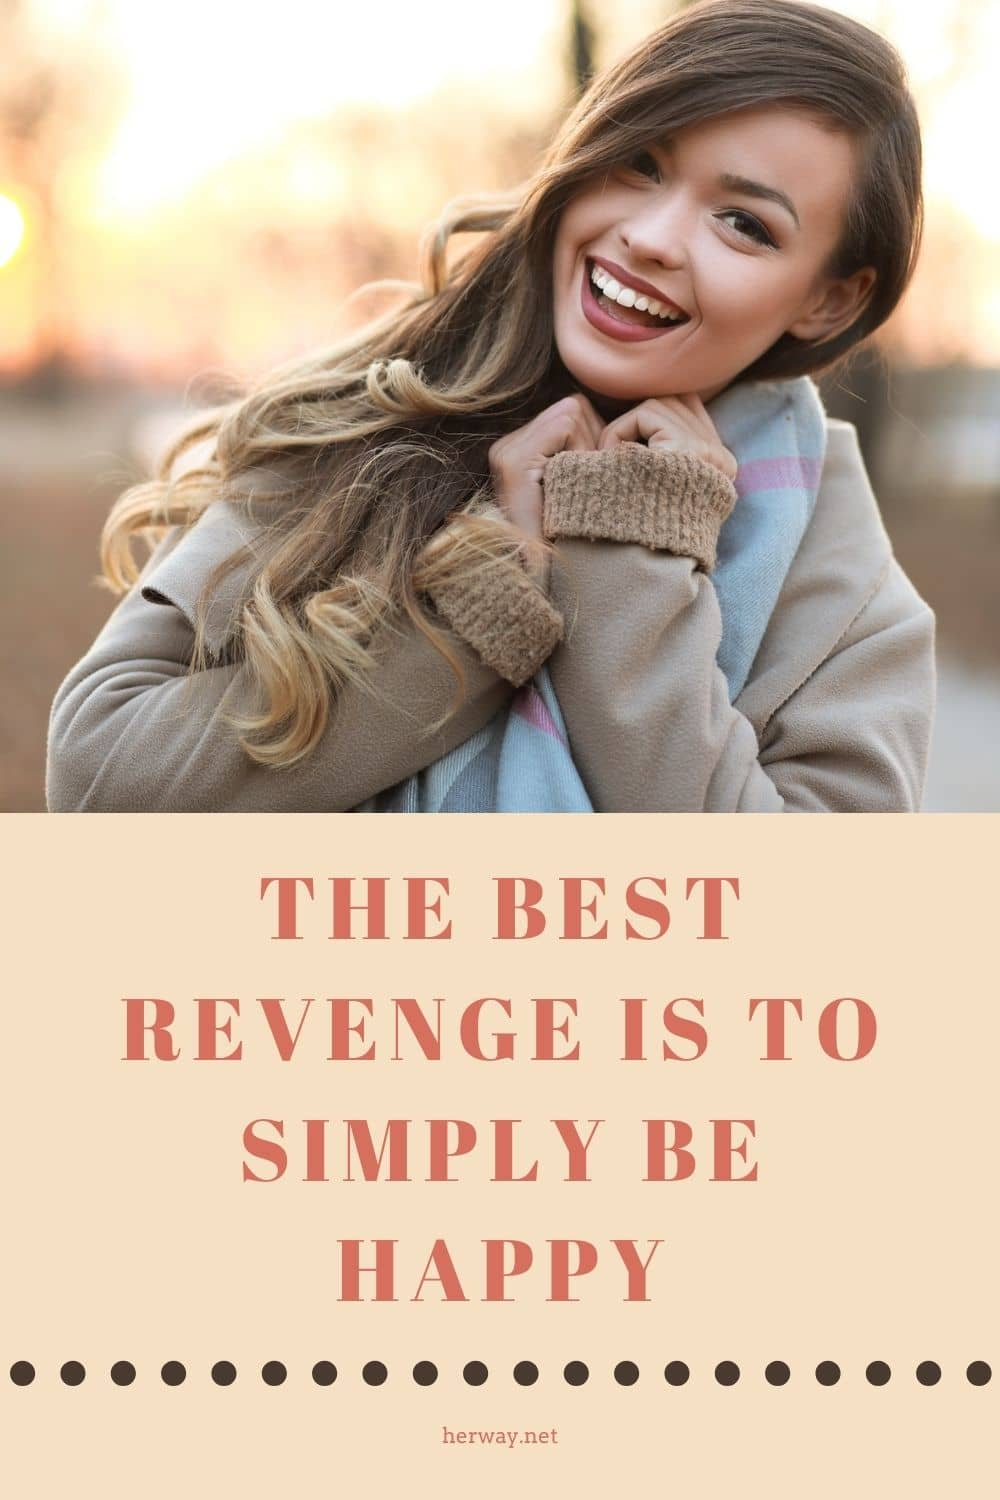 The Best Revenge Is To Simply Be Happy